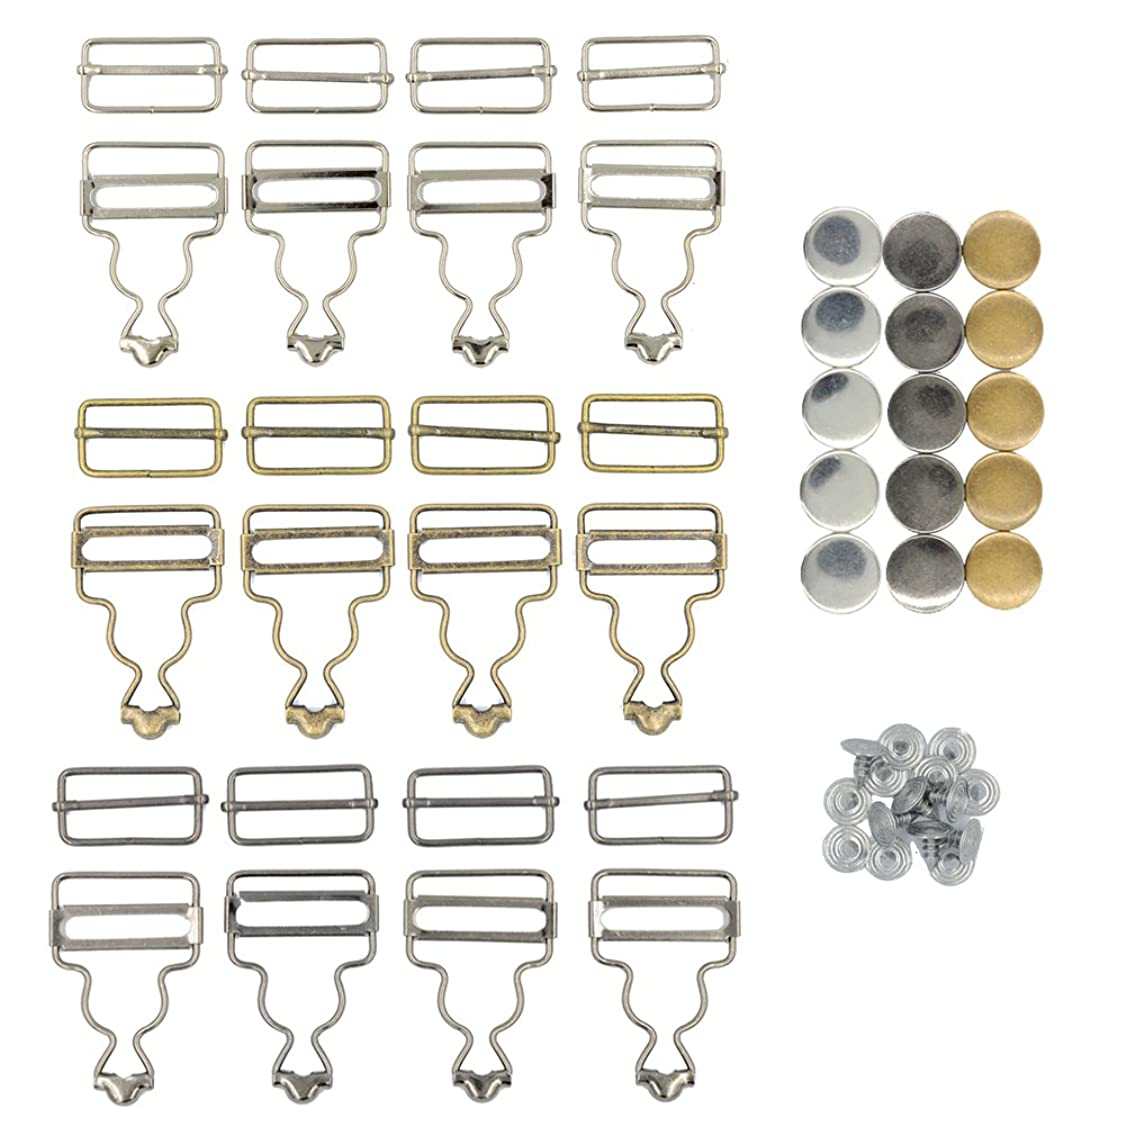 DGOL 12 Sets 3 Color Suspender Buckle & Tri-Glide Overall Buckles with 15 Sets Copper Buttons Full Set (1-1/2